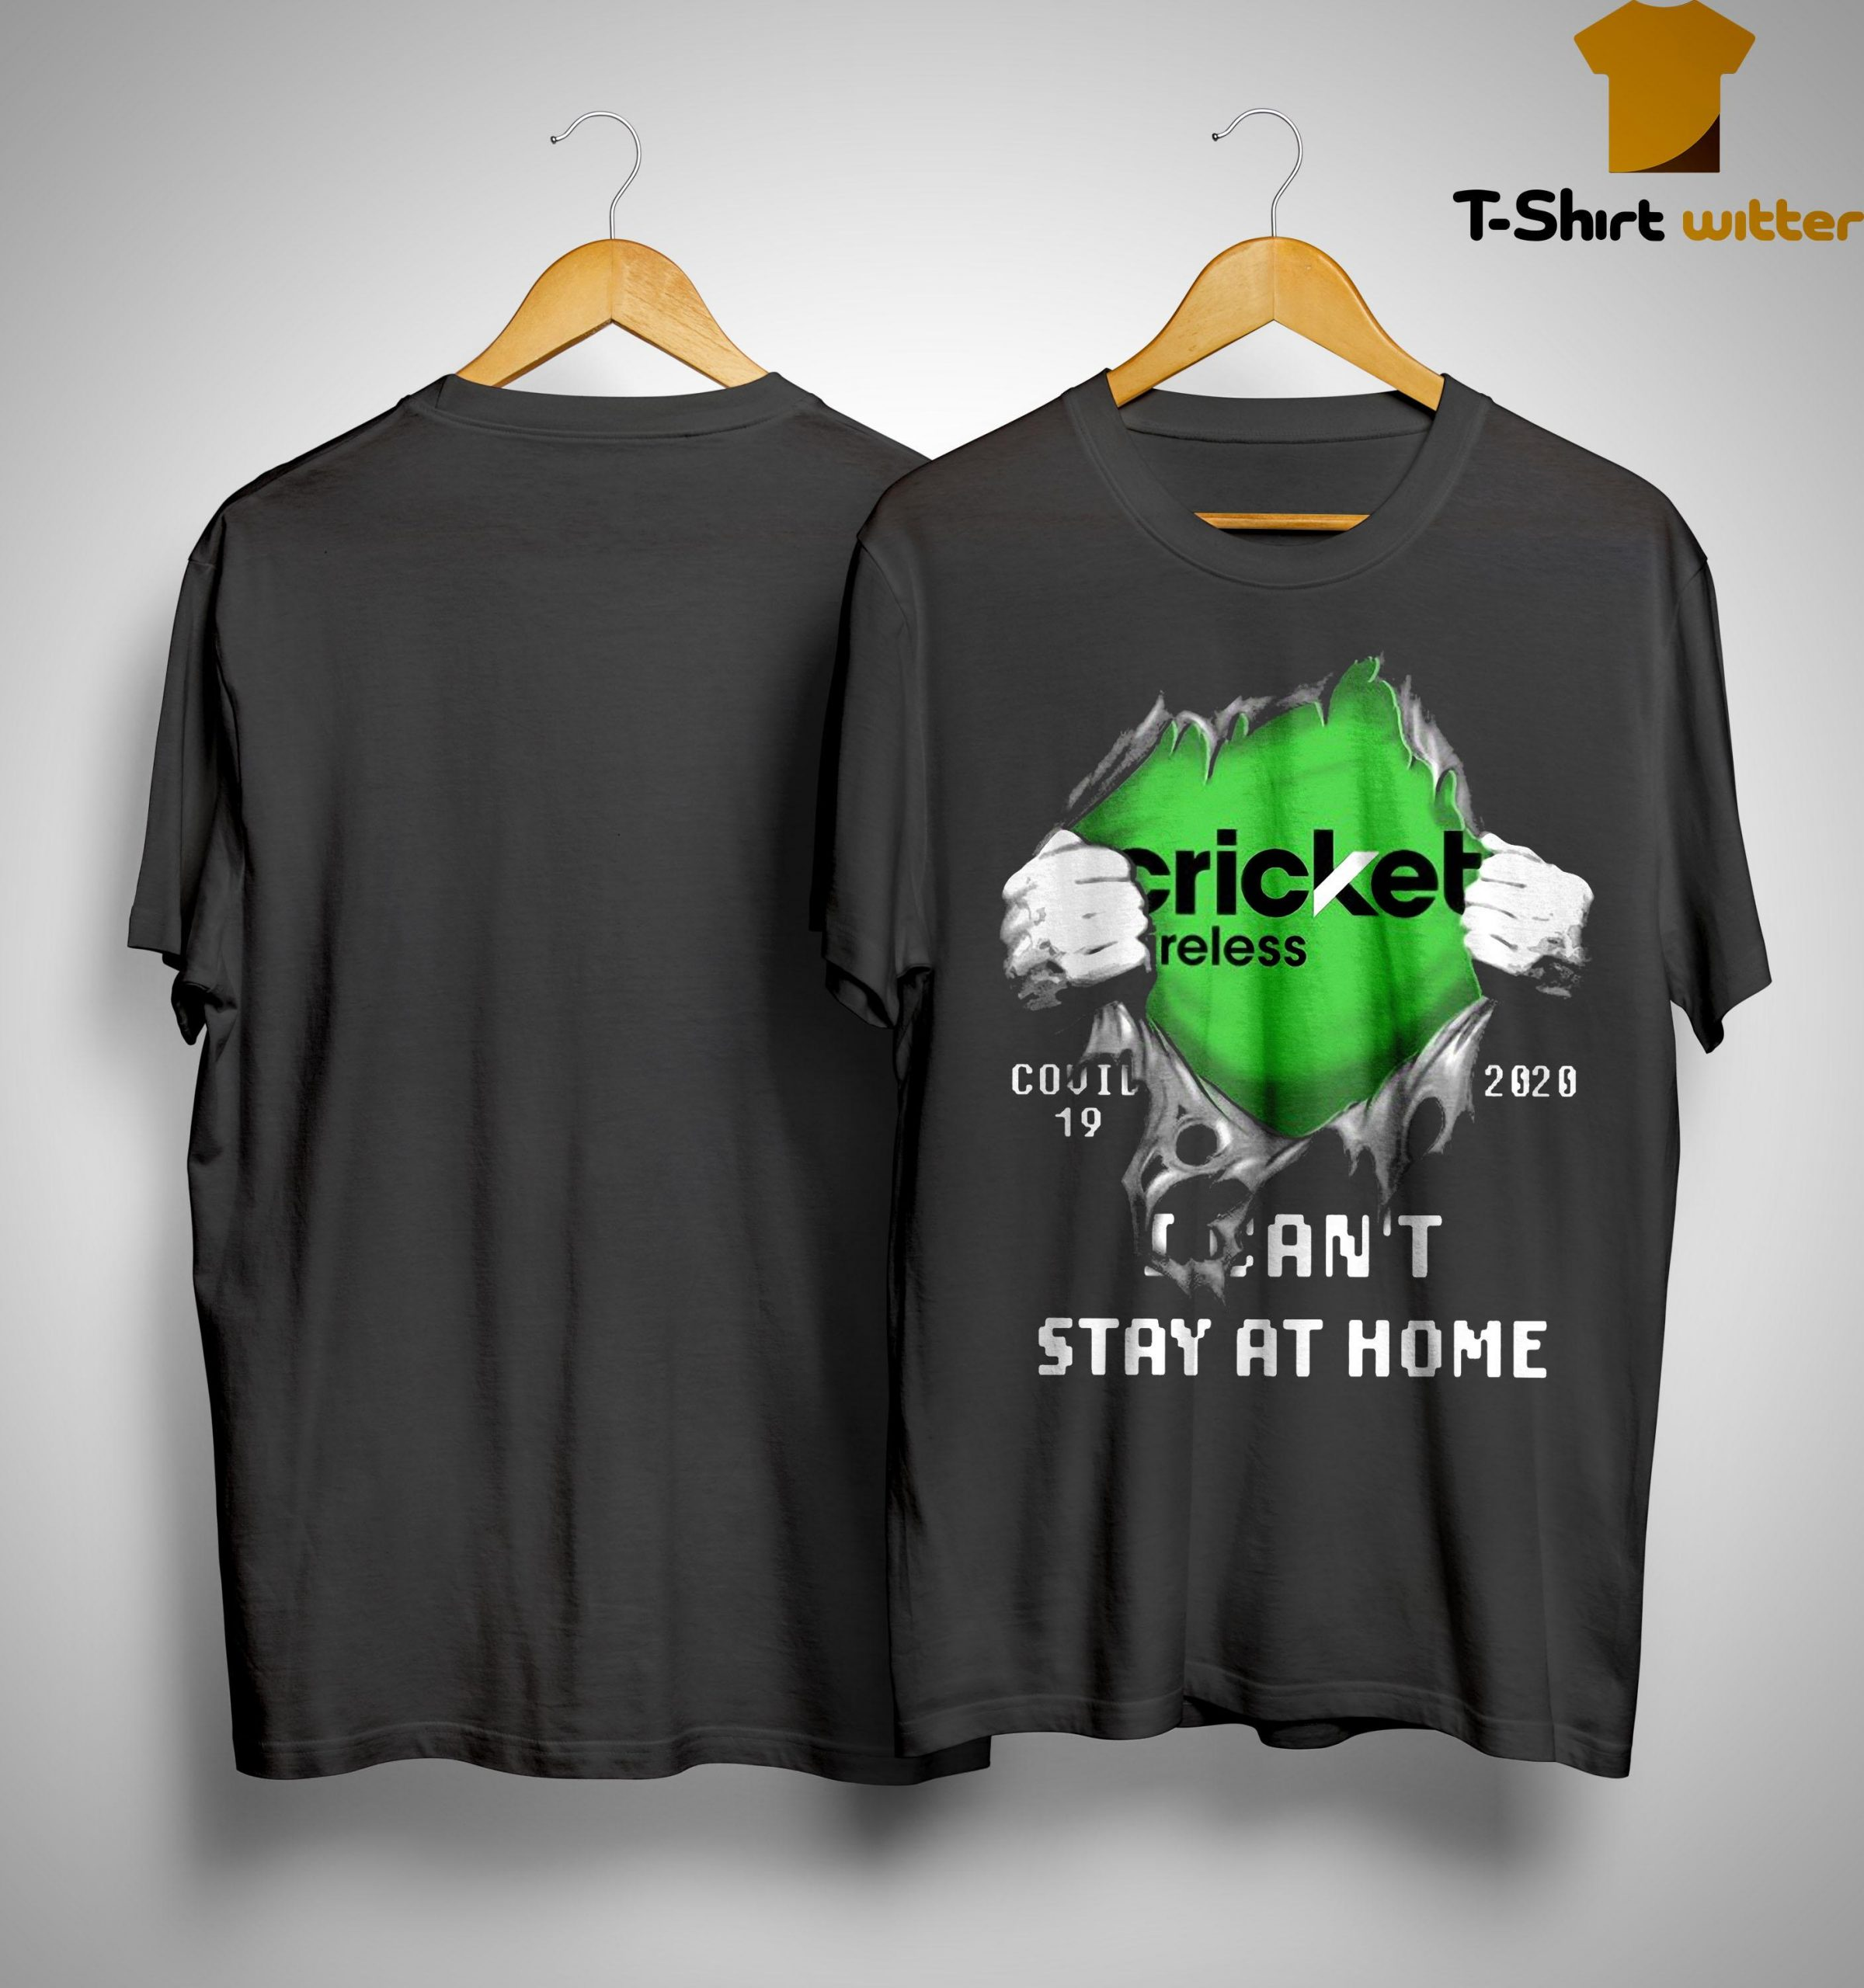 Cricket Wireless Covid 19 2020 I Can't Stay At Home Shirt